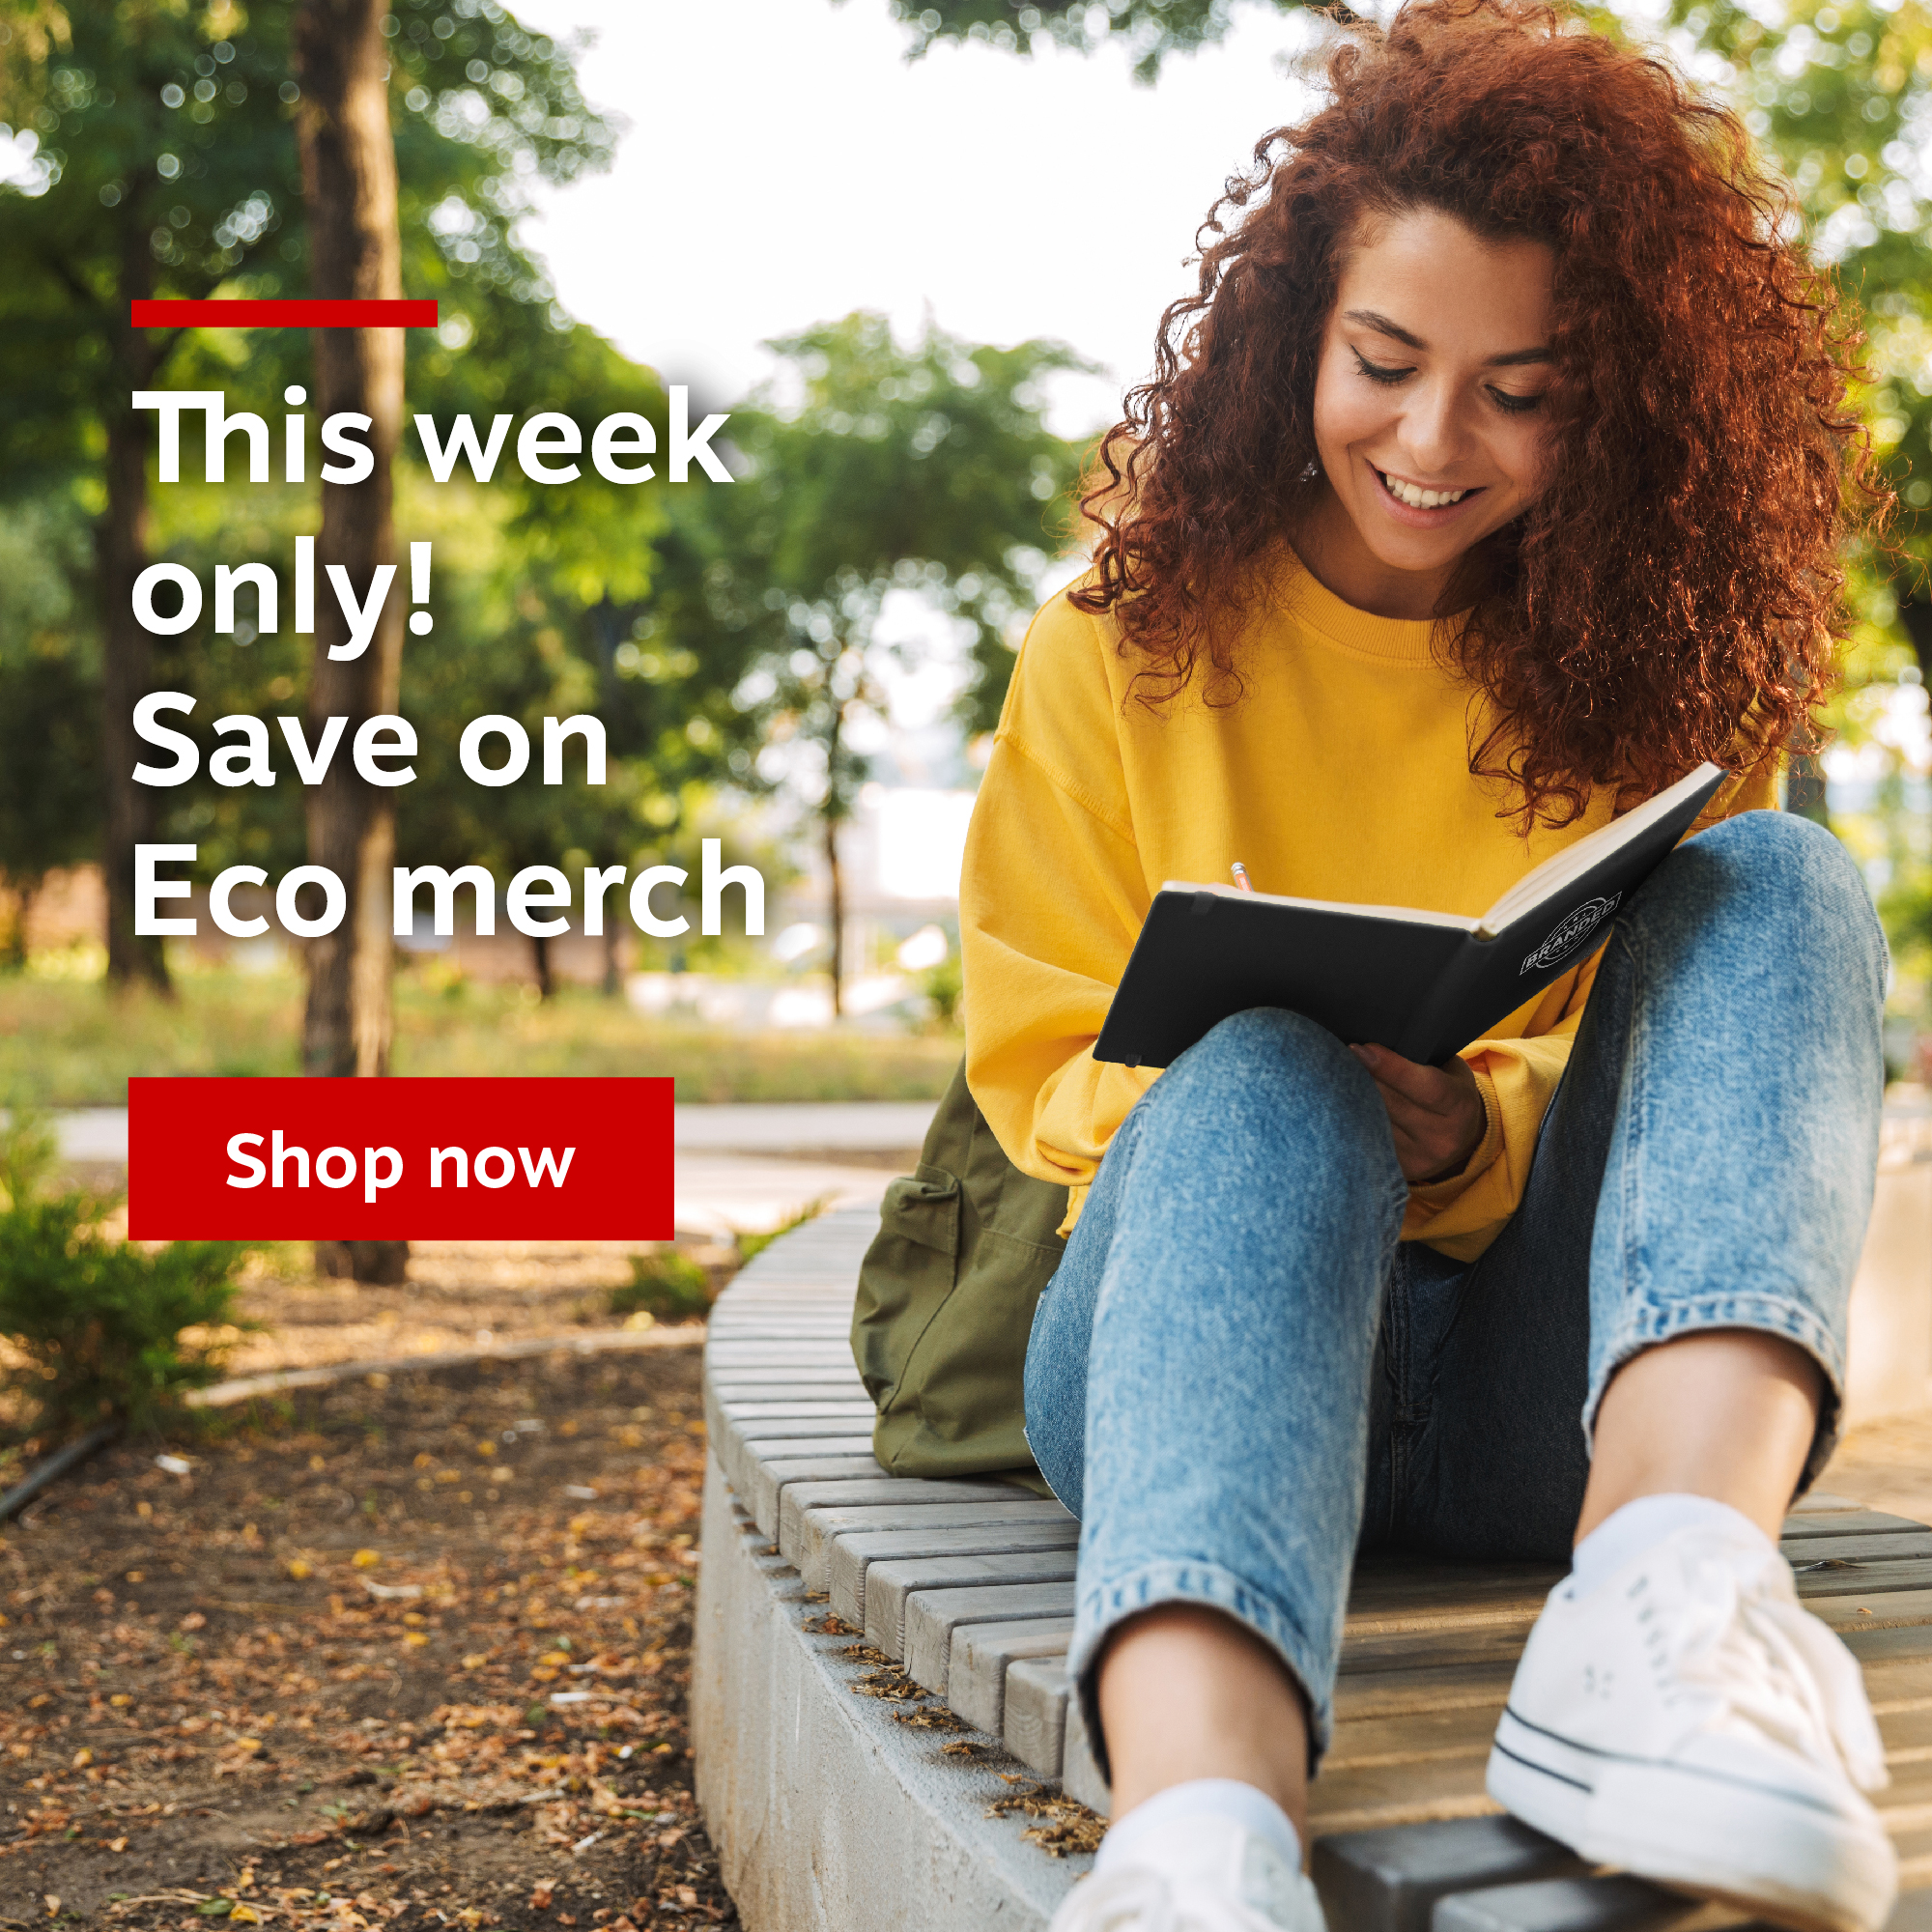 This week only, save on eco merch! Shop now